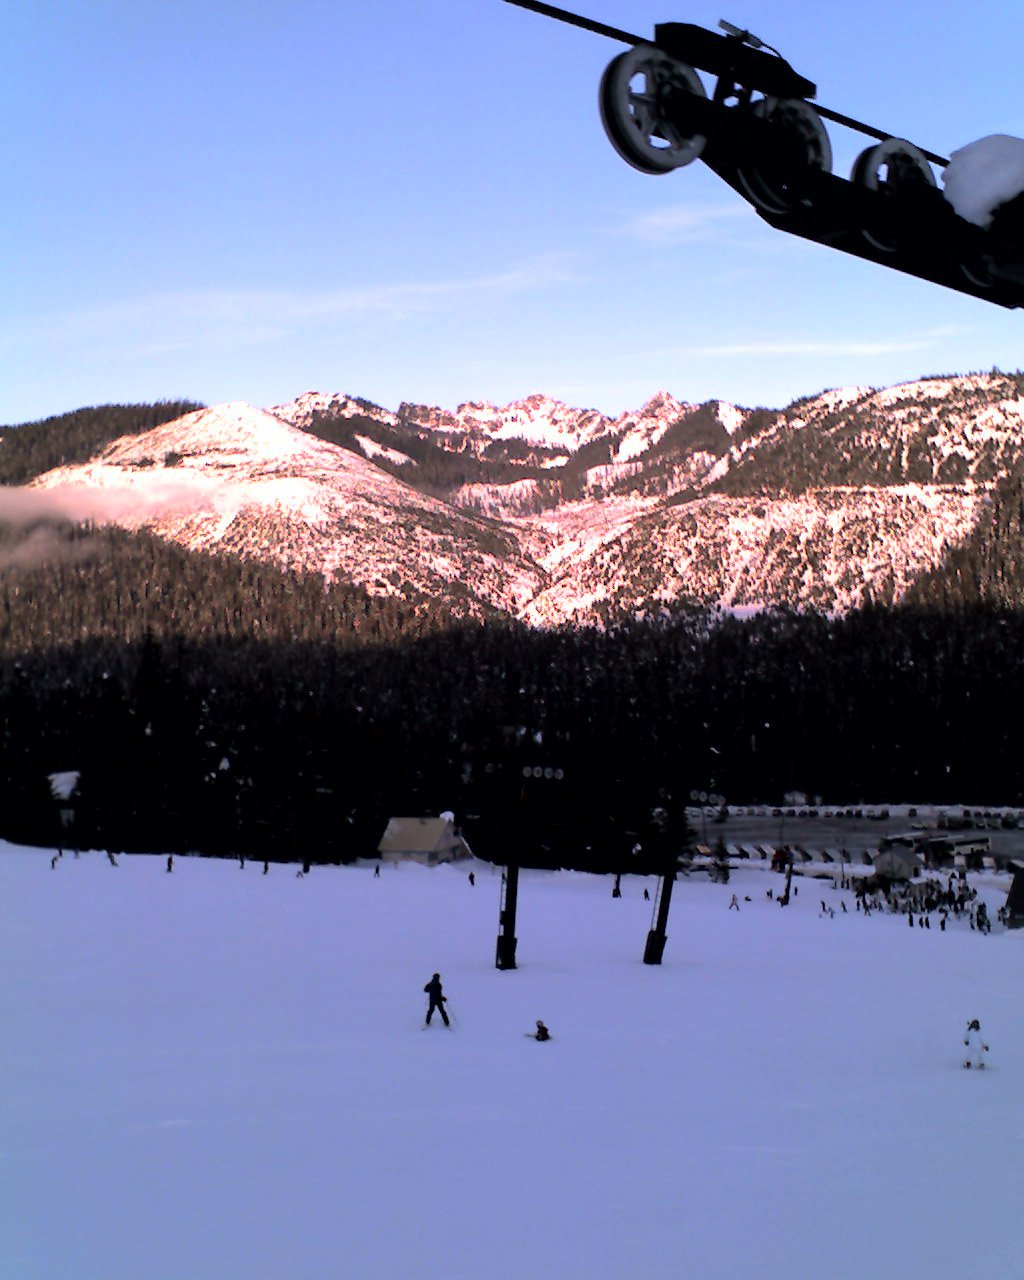 A view of snoqualmie from the lift